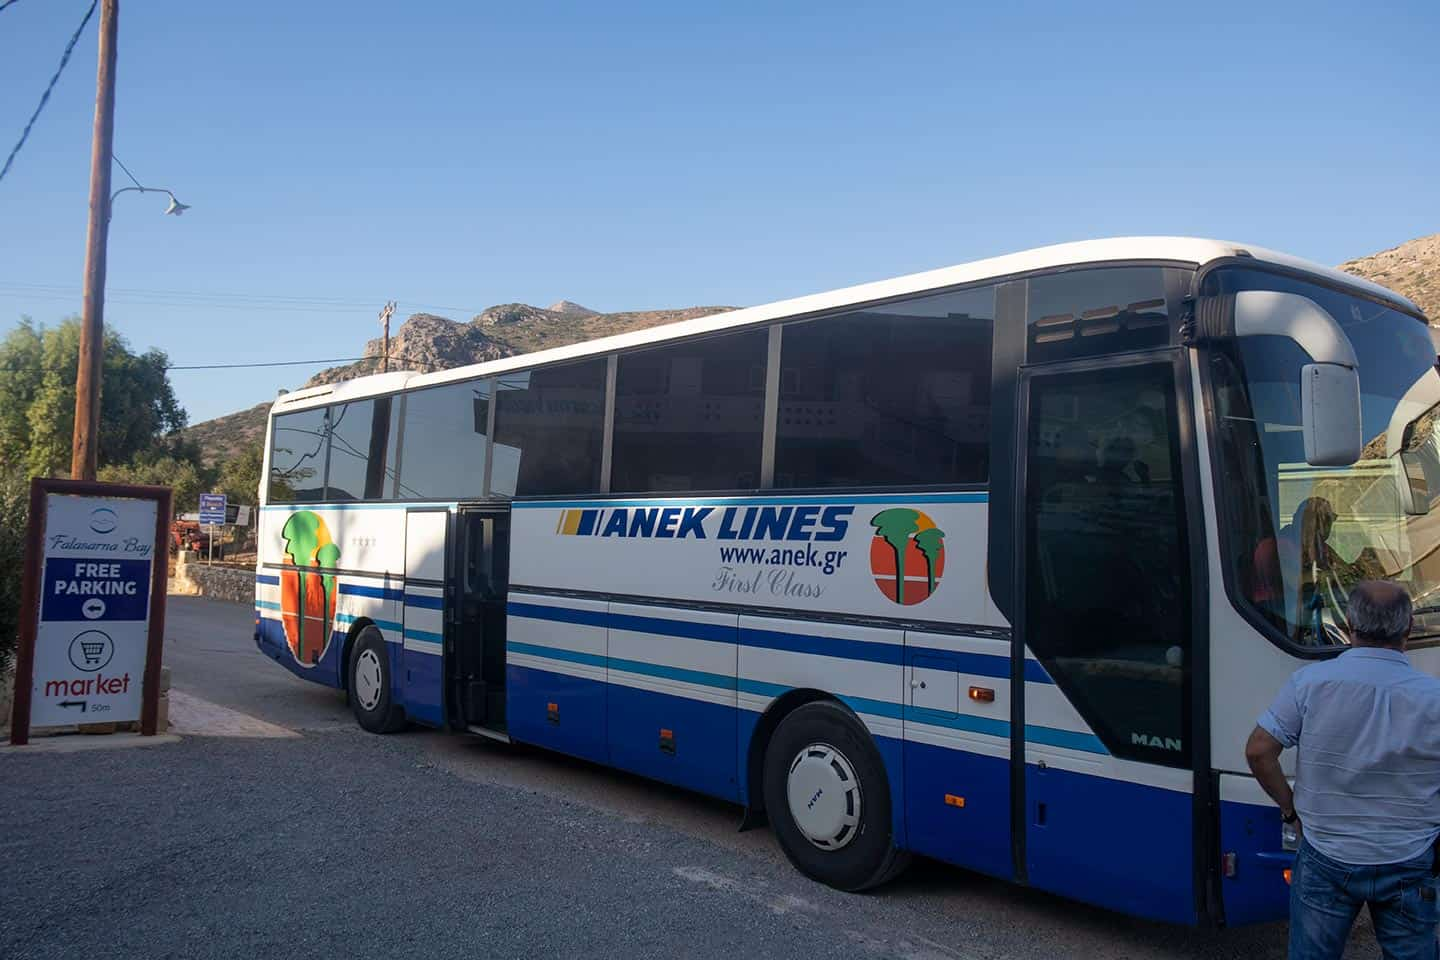 Image of the local bus at Falassarna Crete Greece